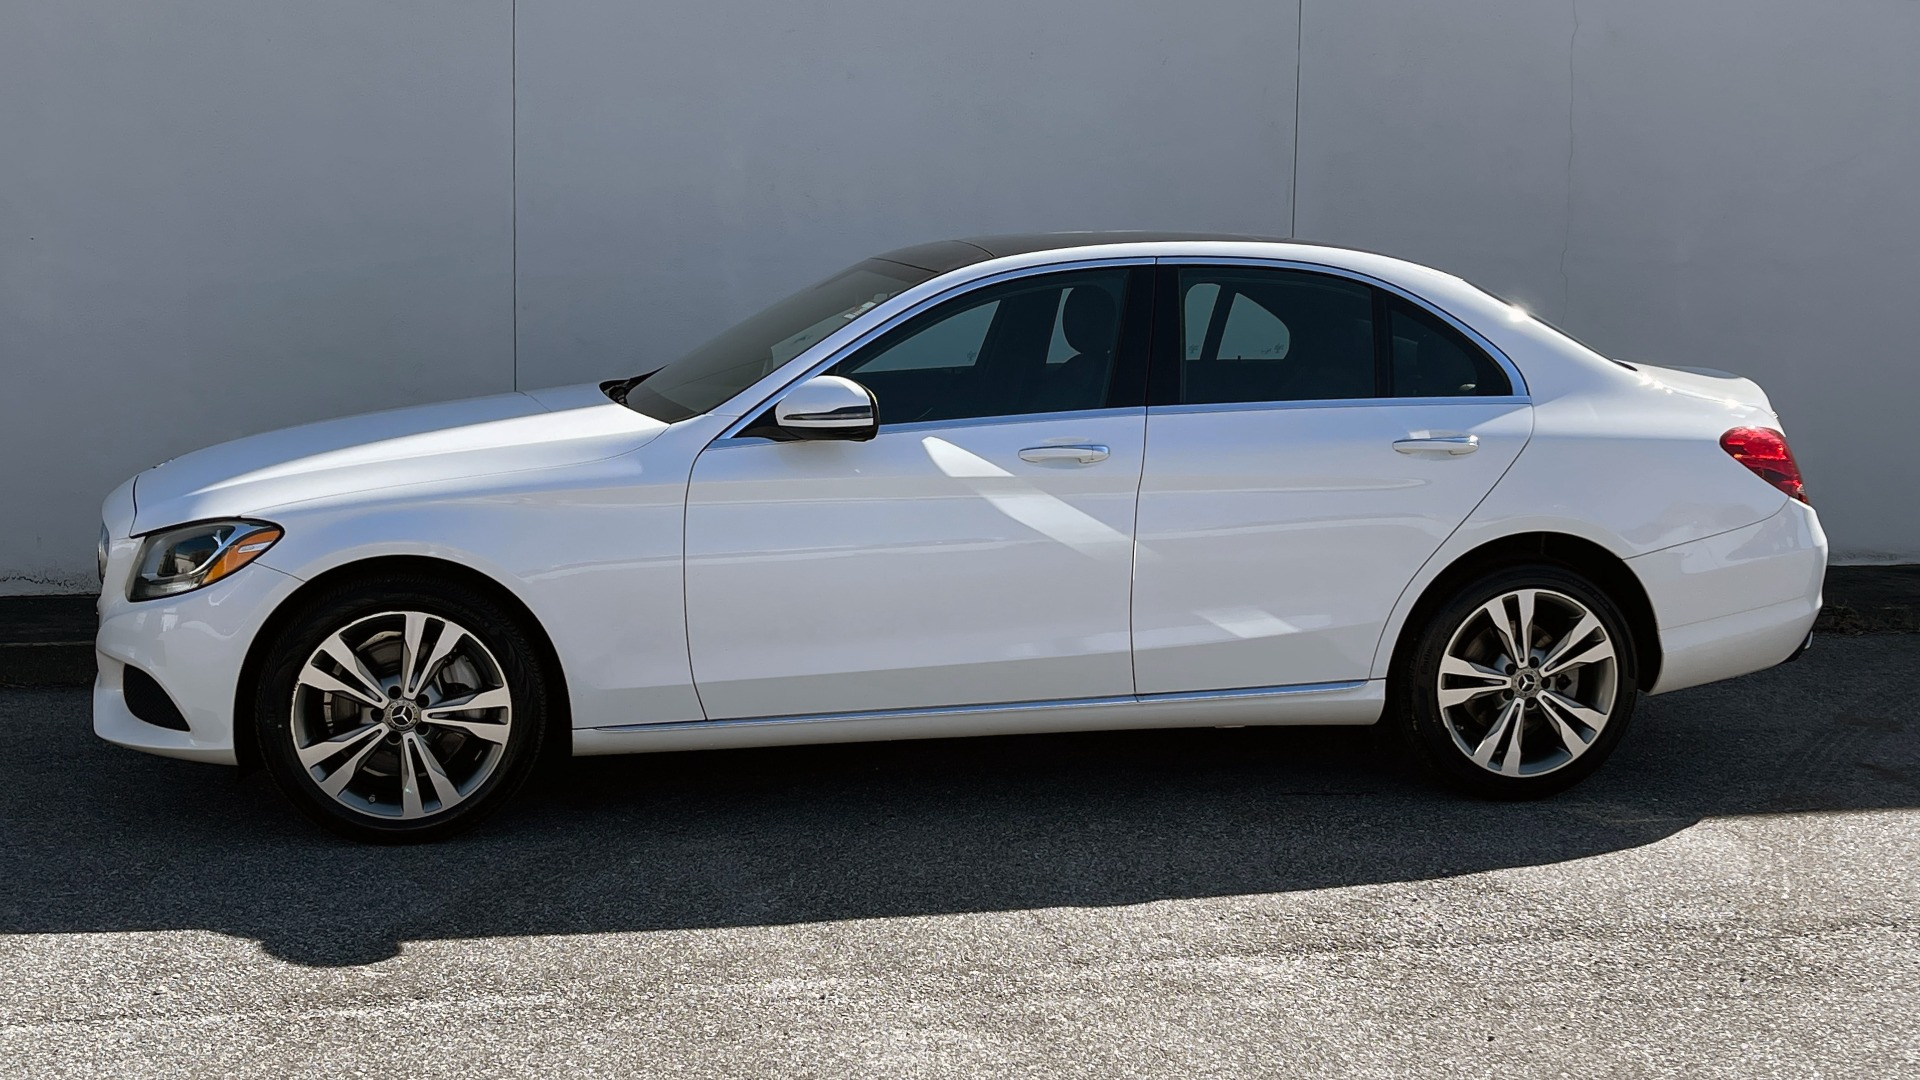 Used 2018 Mercedes-Benz C-CLASS C 300 4MATIC PREMIUM / SMARTPHONE INTEG / PANO-ROOF / REARVIEW for sale $30,995 at Formula Imports in Charlotte NC 28227 3